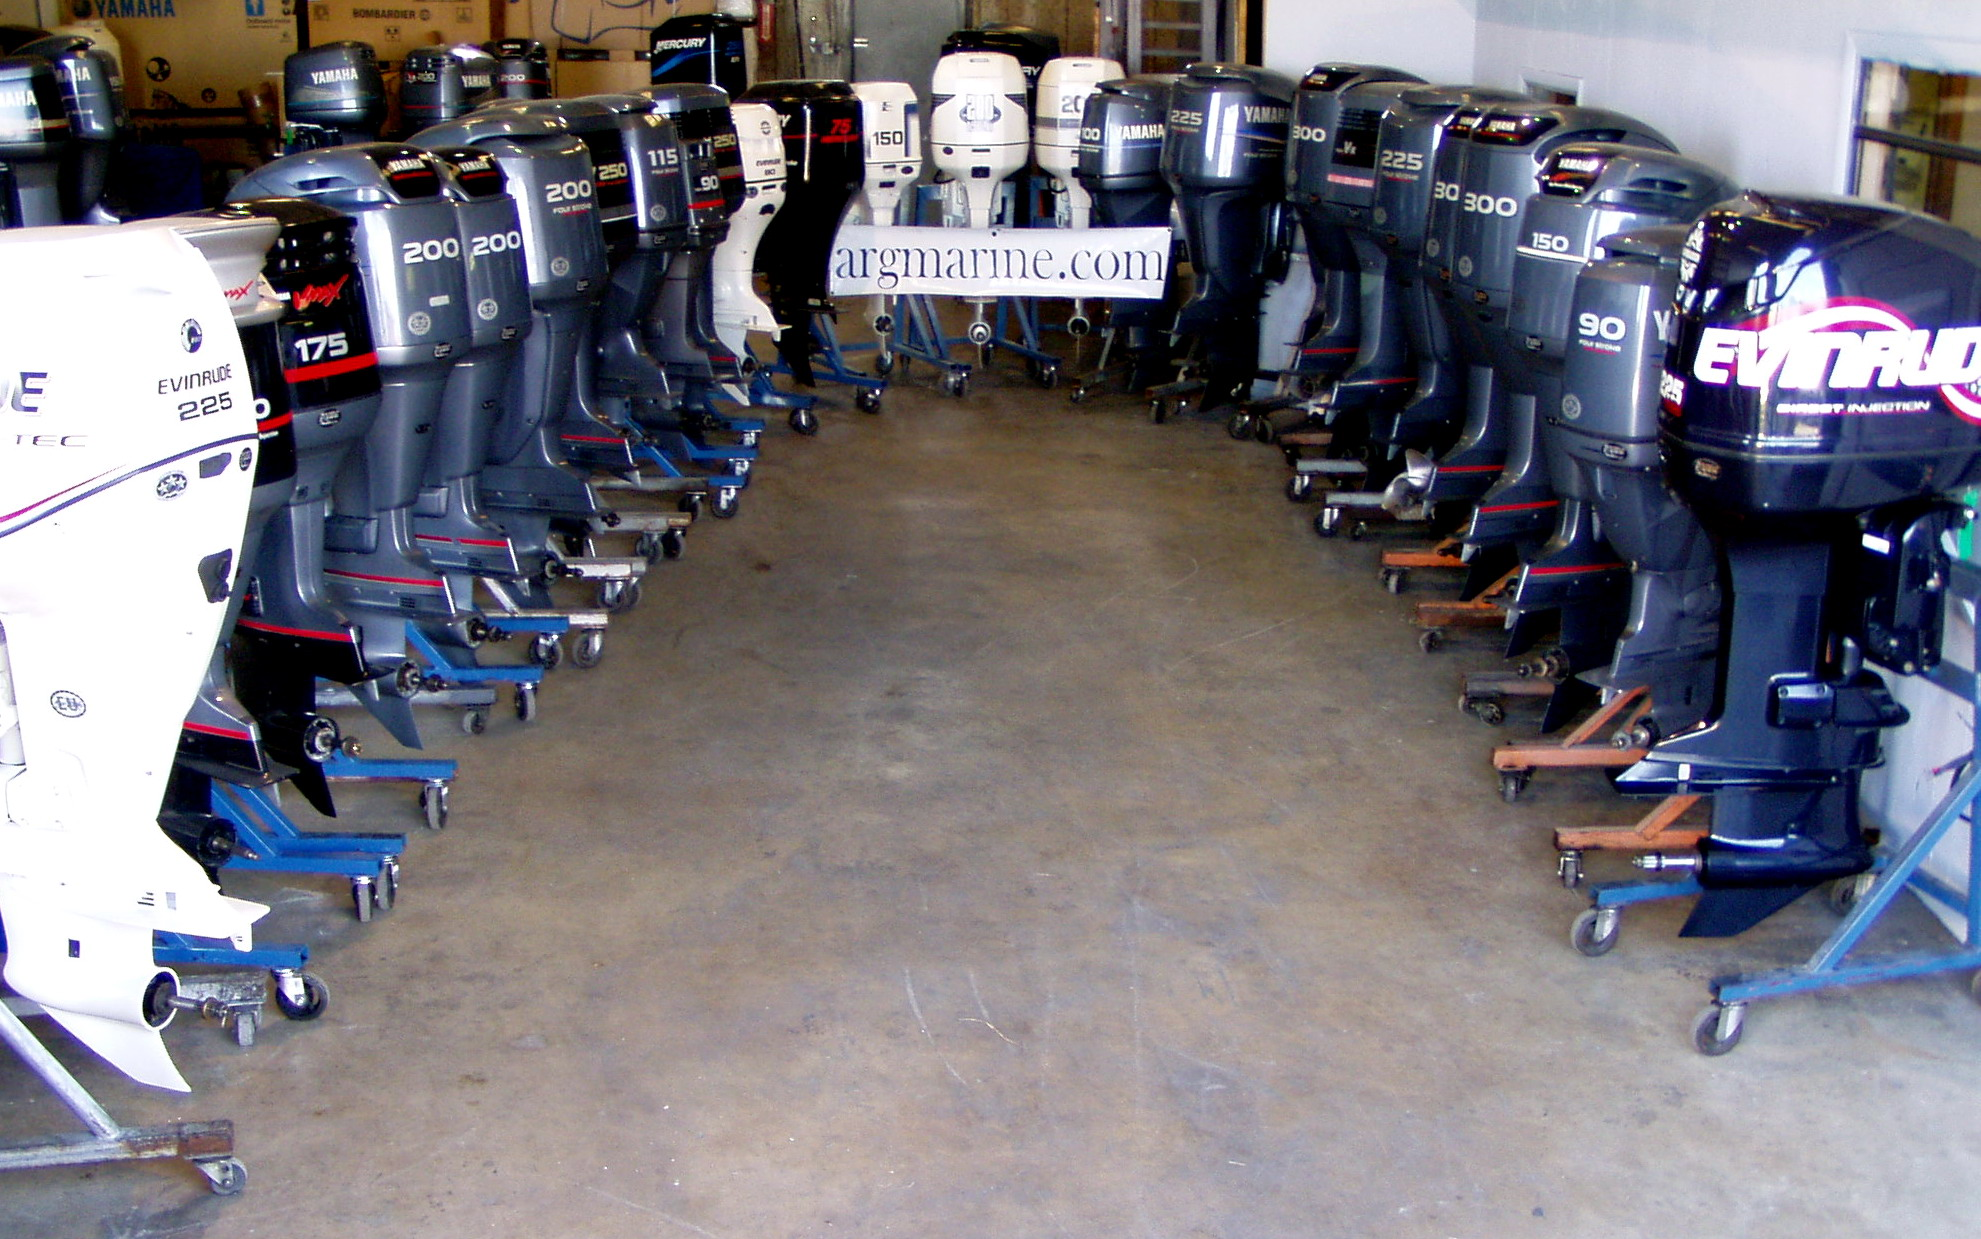 Arg marine dealer new used outboard motors new used for Boat motors for sale in arkansas